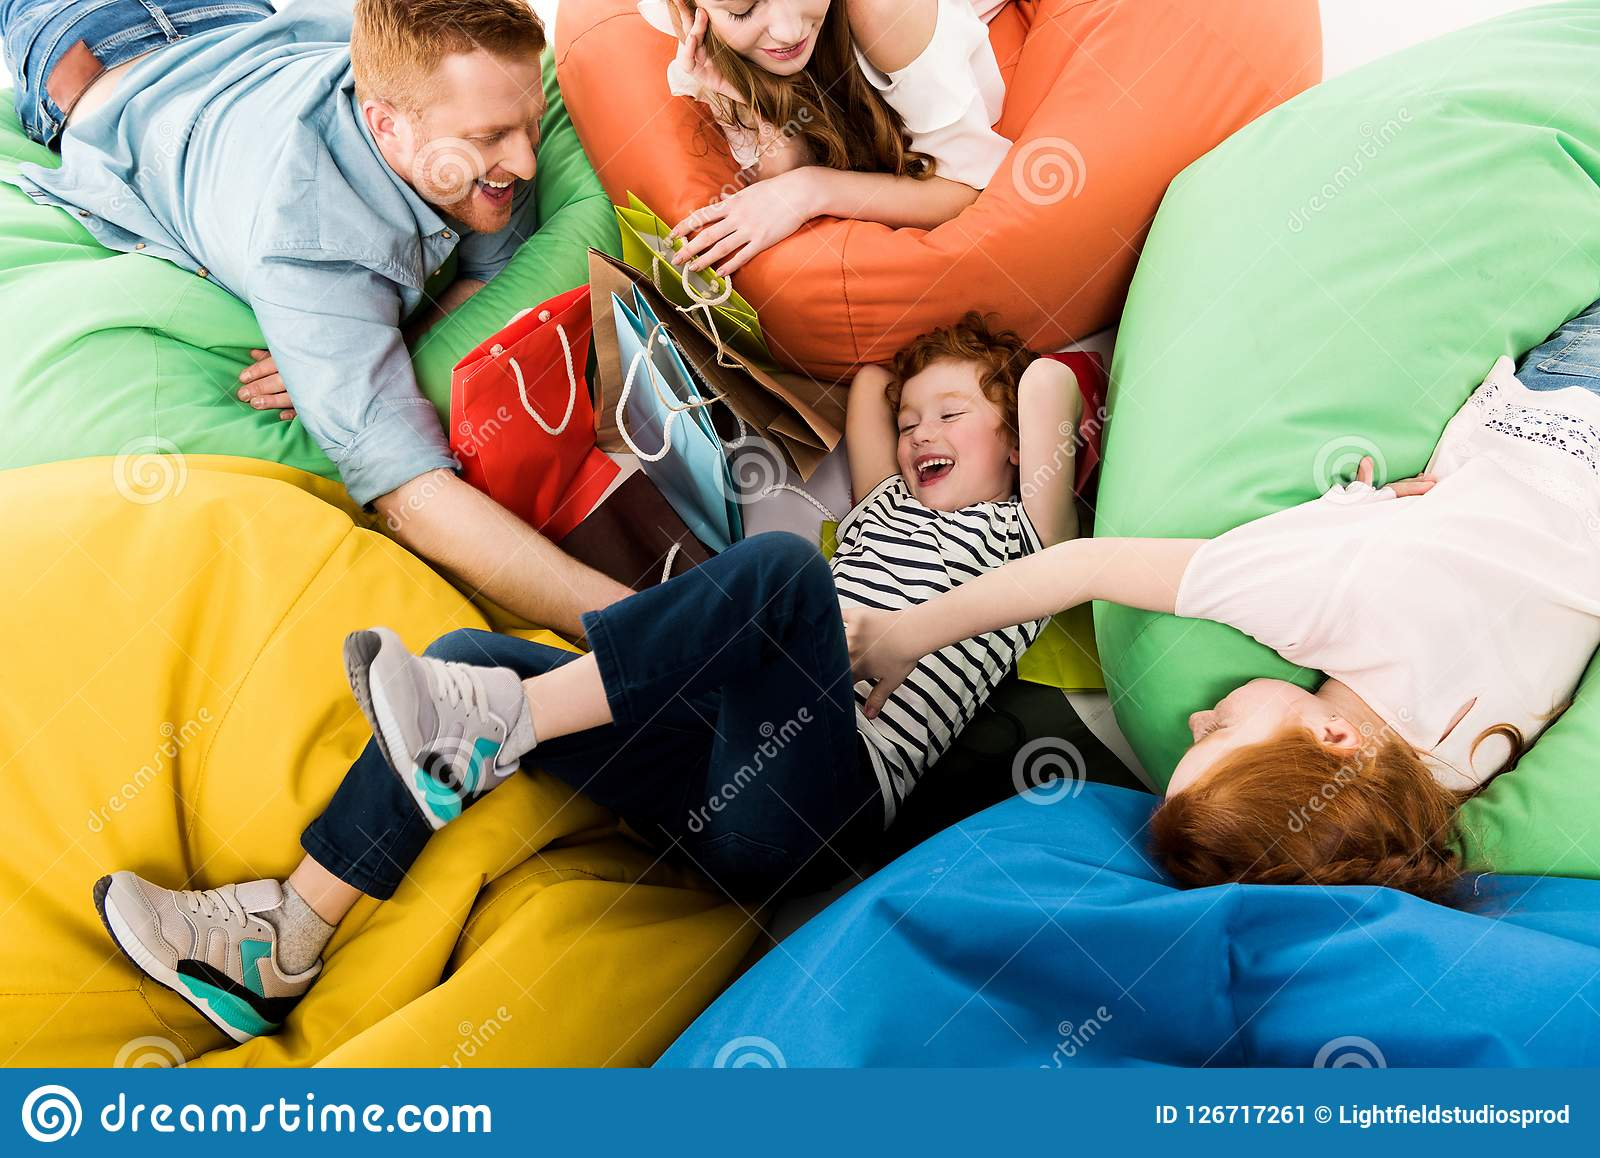 high angle view of happy family with shopping bags having fun on bean